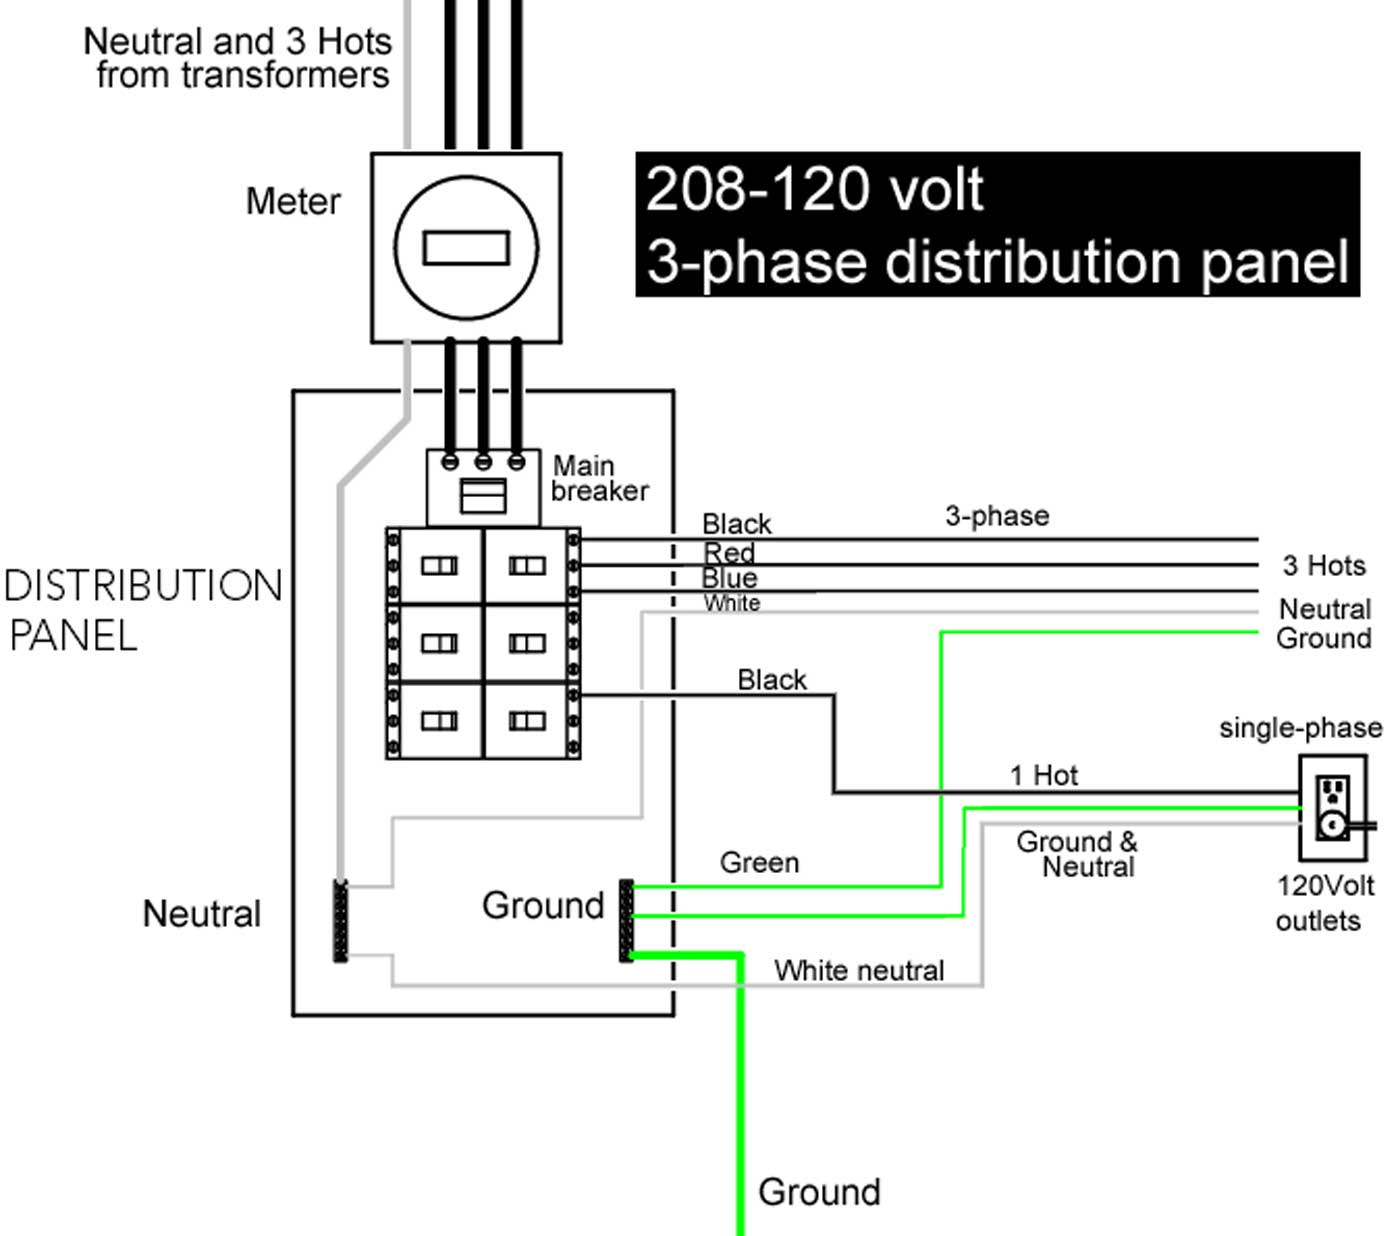 440 Single Phase Wiring Diagram | Wiring Diagram - 208 Volt Single Phase Wiring Diagram